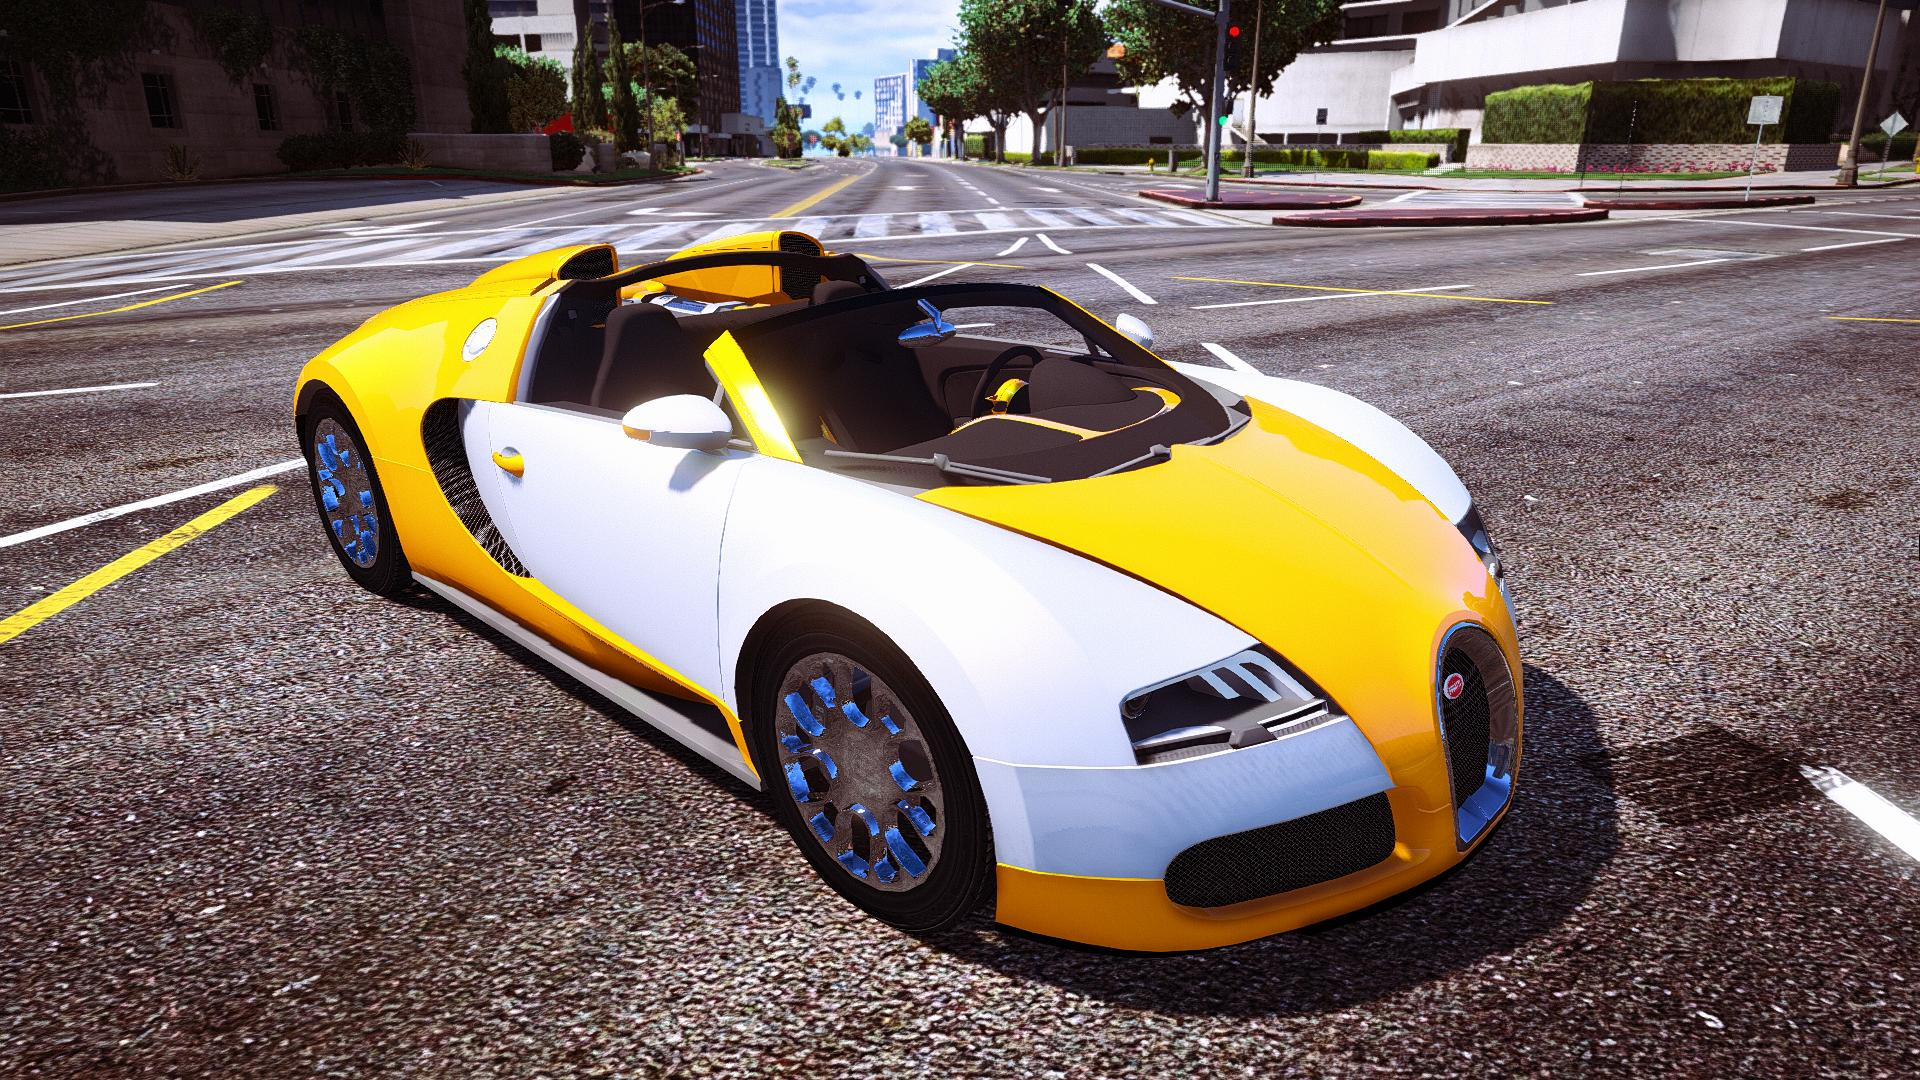 gta 5 quot adder quot customization guide bugatti veyron. Black Bedroom Furniture Sets. Home Design Ideas